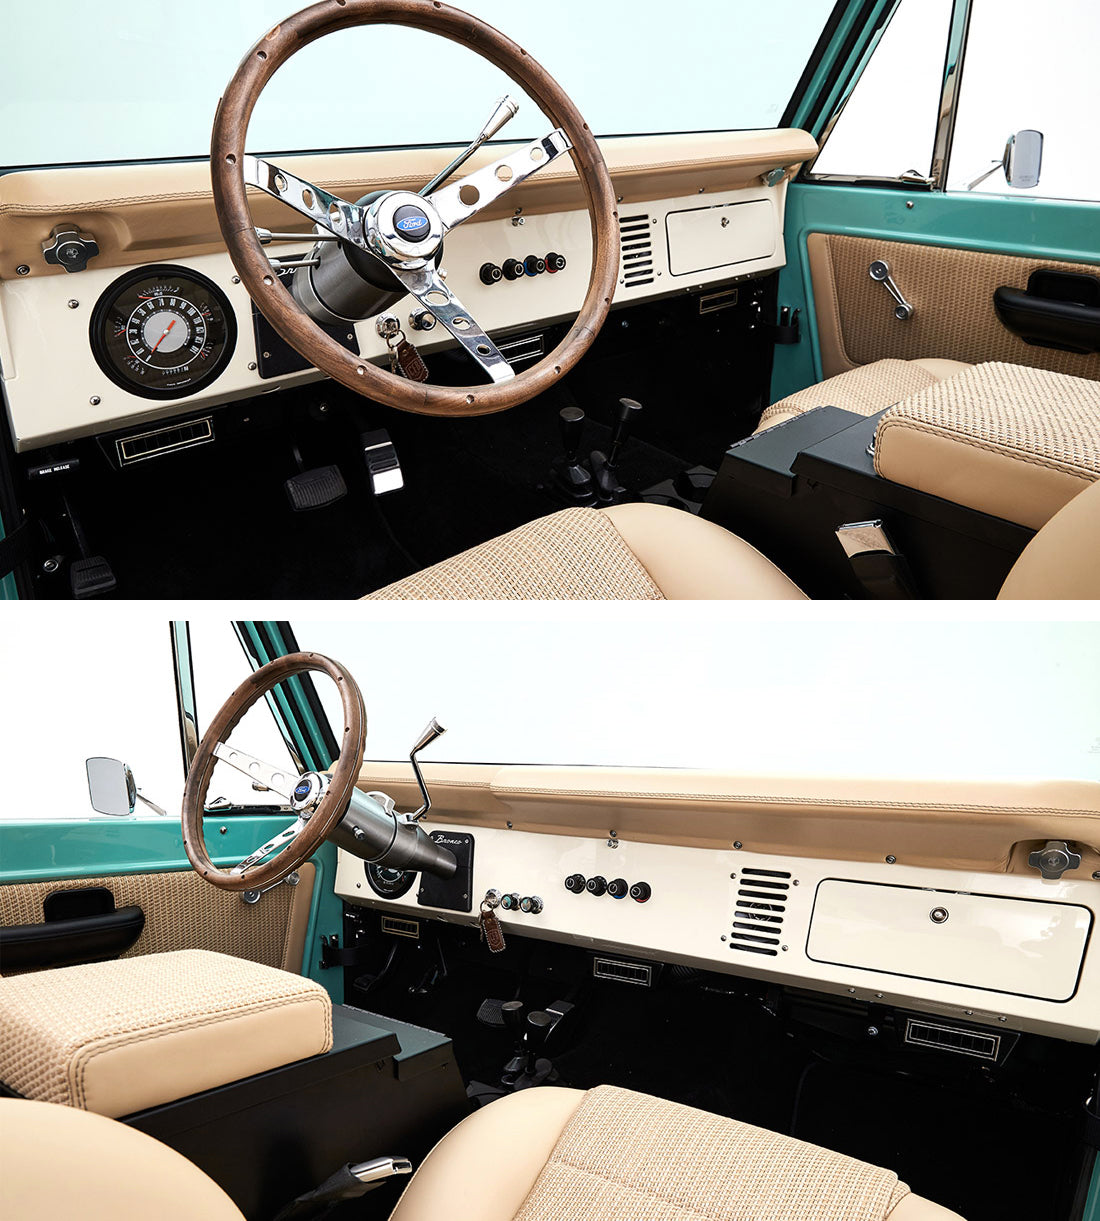 Classic Ford Broncos with Relicate Woven Leather Interior Seats Dash steering wheel